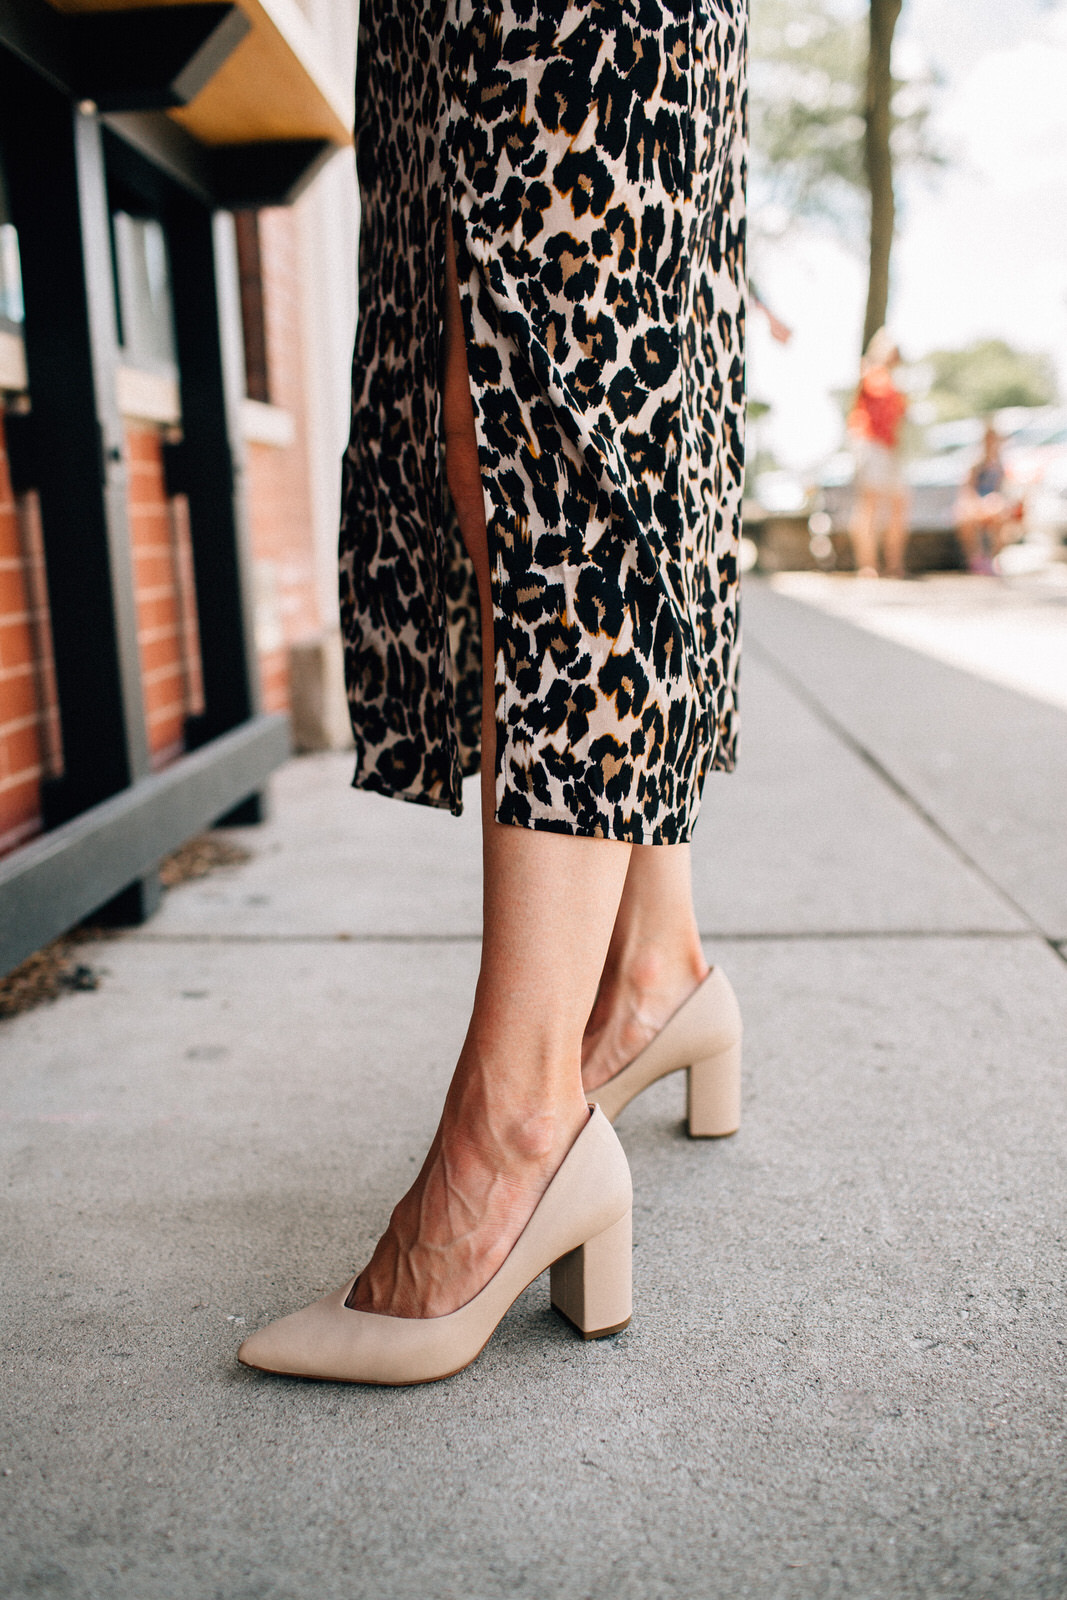 nordstrom anniversary sale outfit BP leopard silk dress with nude pumps